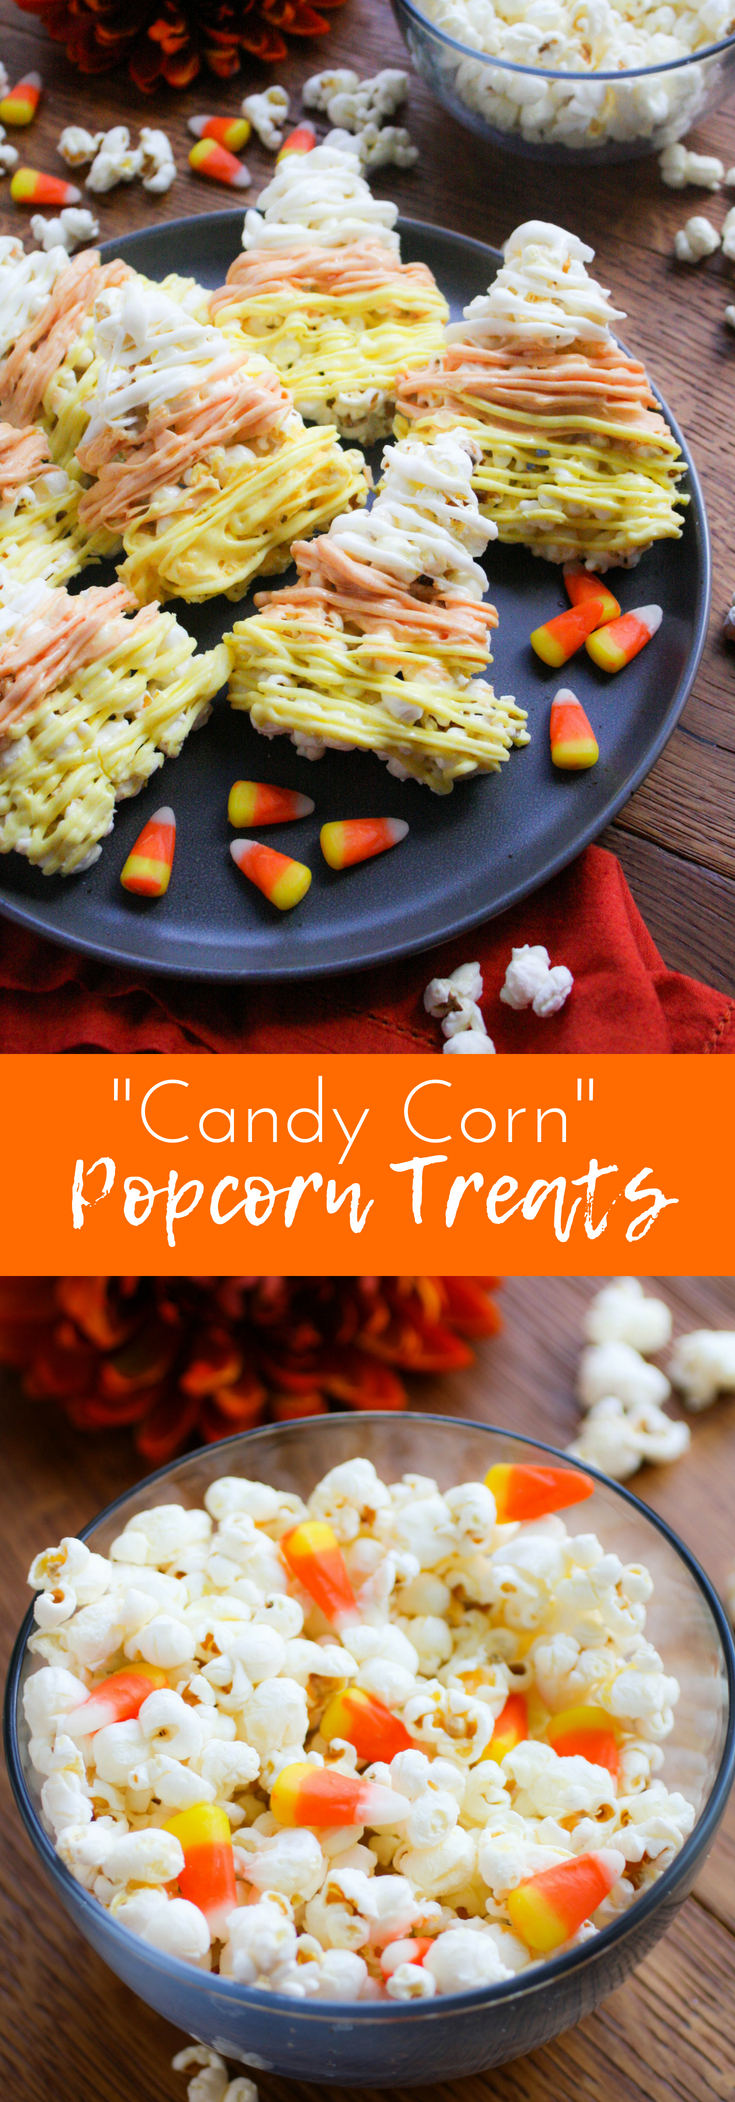 Candy Corn-Shaped Popcorn Balls are a festive Halloween treat you'll love! Serve these Candy Corn-Shaped Popcorn Balls for Halloween fun!